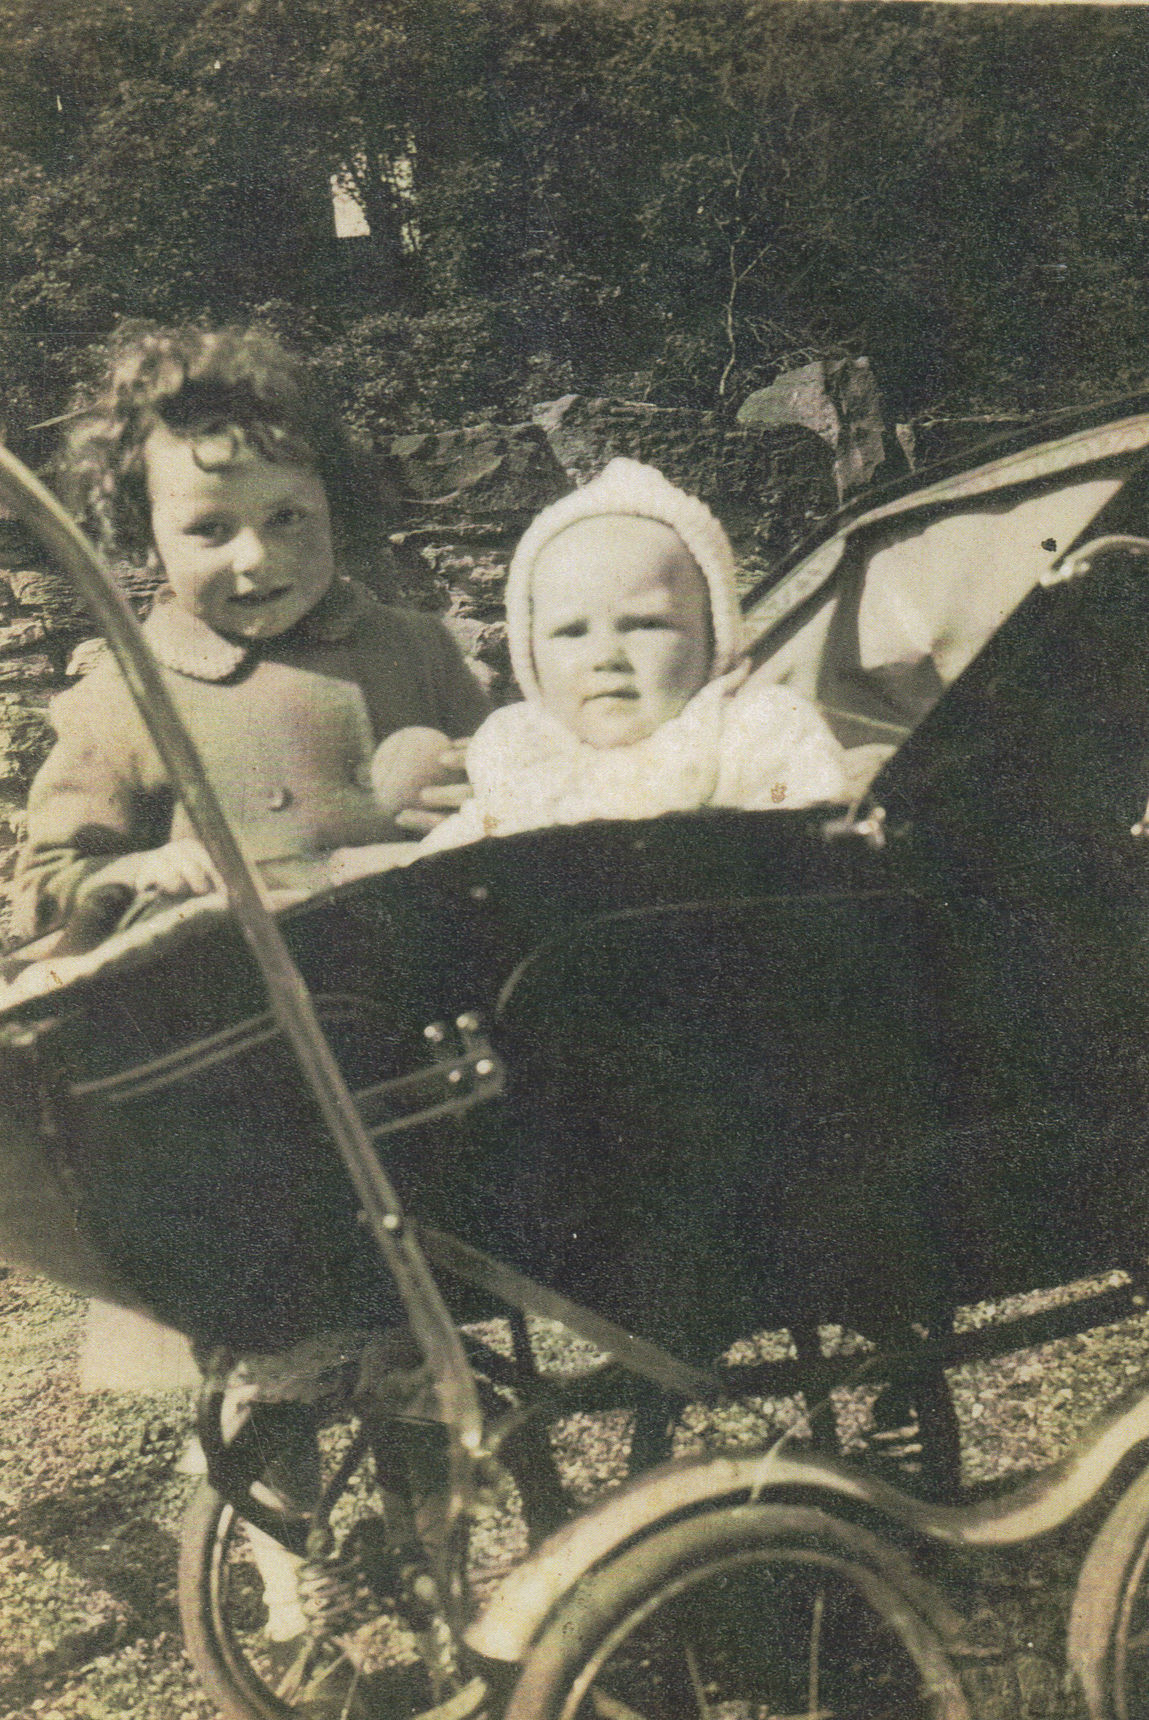 Me in my pram age 9 months, with my Sister Avril age 4 years in Dean Path.